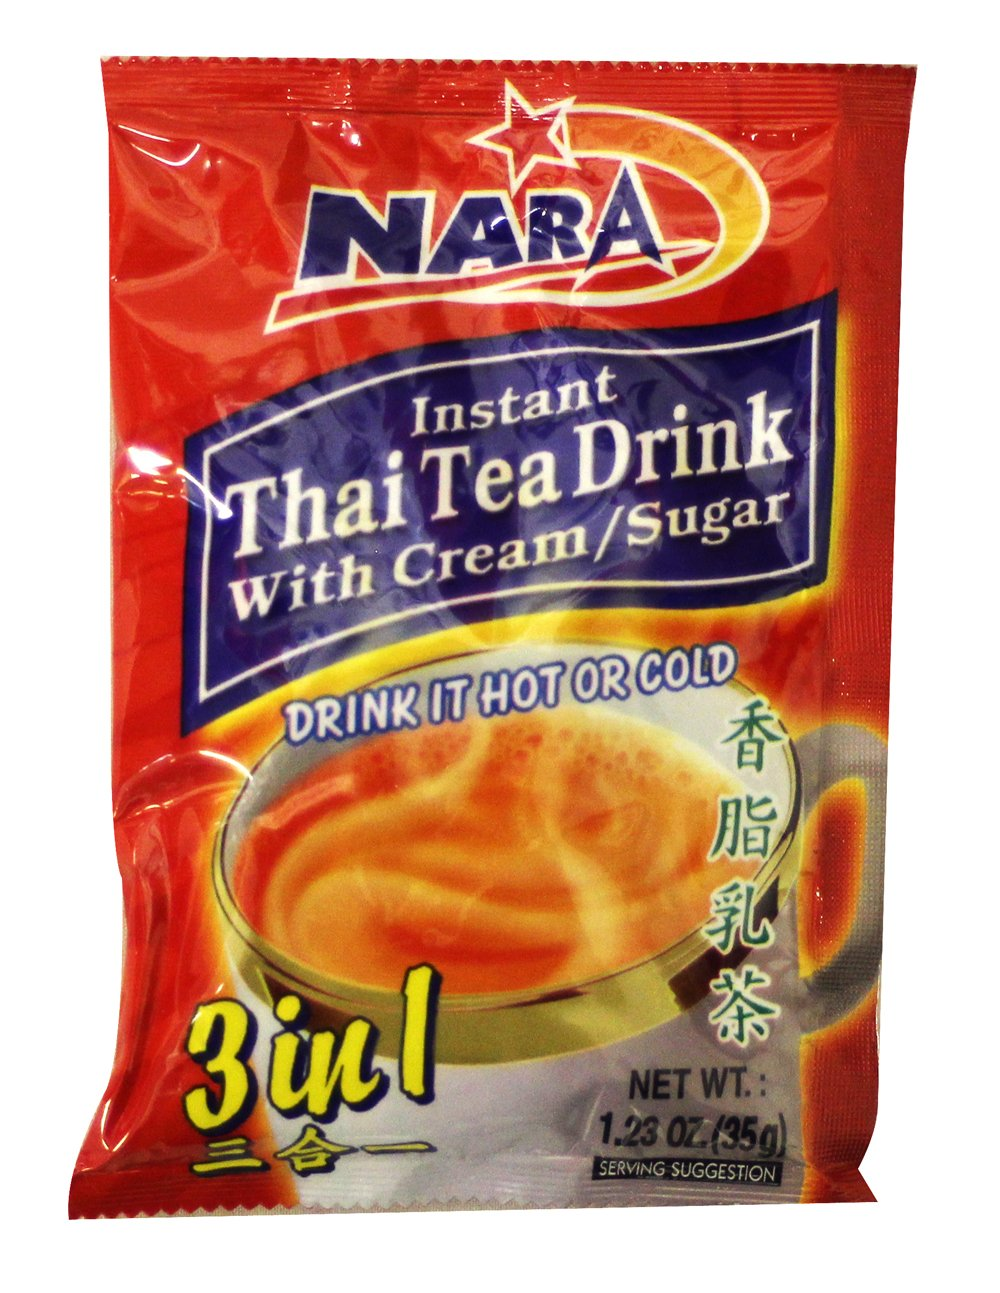 Instant Thai Tea Drink 3 in 1 (With Cream & Sugar /12-ct) - 14.76oz (Pack of 1) by Nara